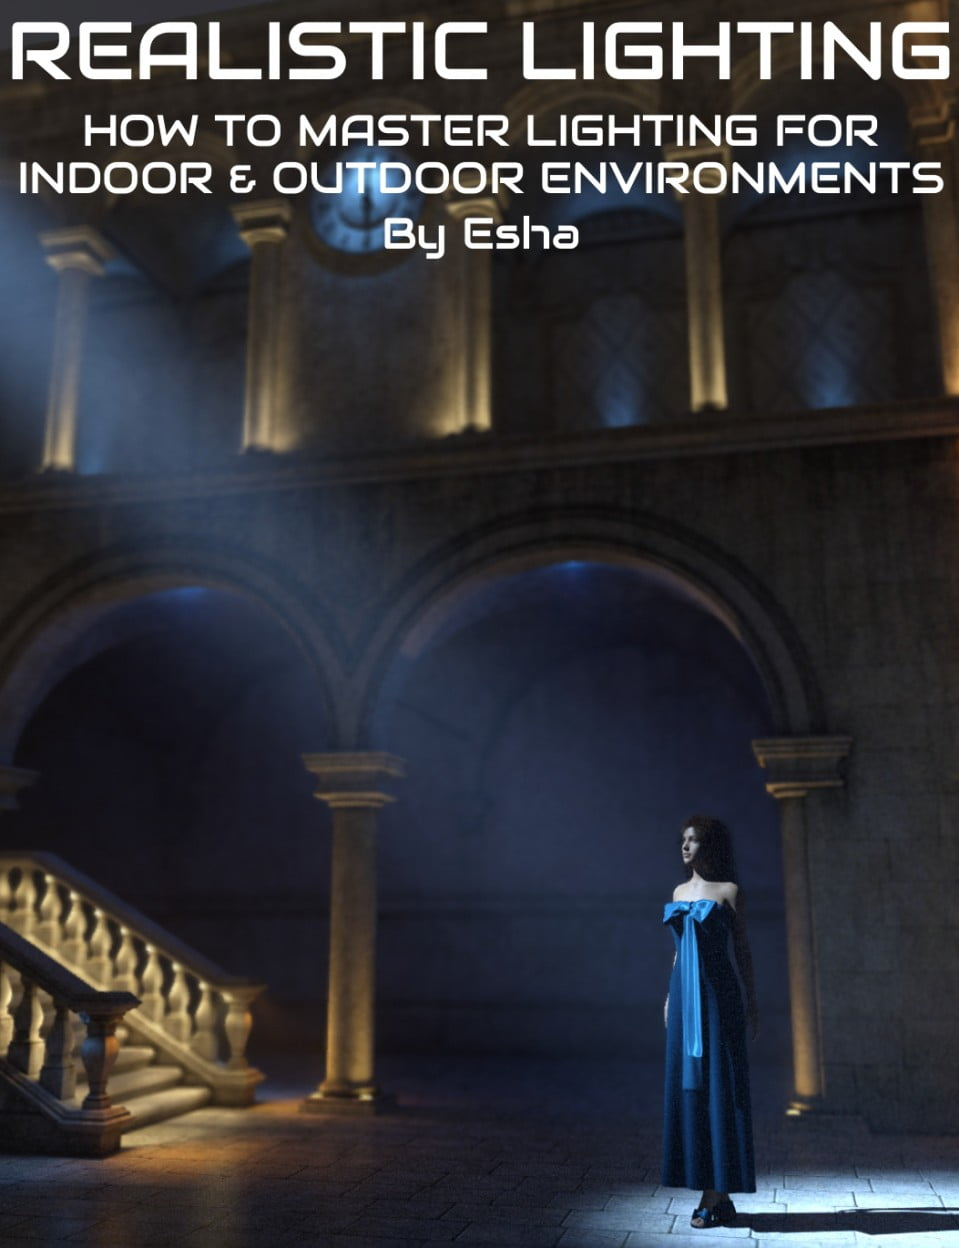 How to Create Realistic Lighting for Indoor and Outdoor Scenes